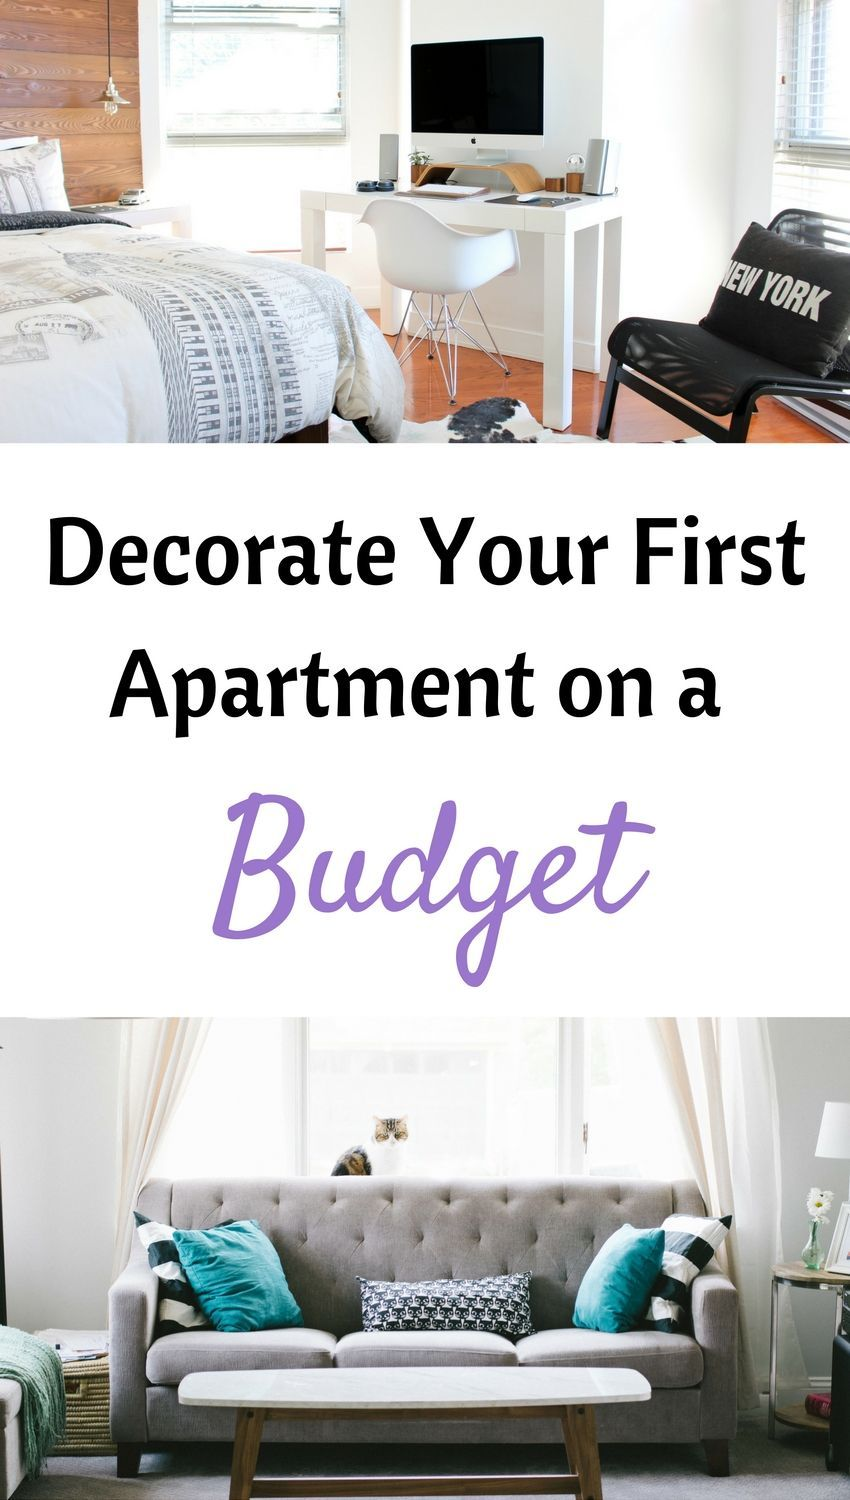 Learn How To Decorate Your Apartment Or Dorm Room On A Strict Budget.  Decorating Doesn